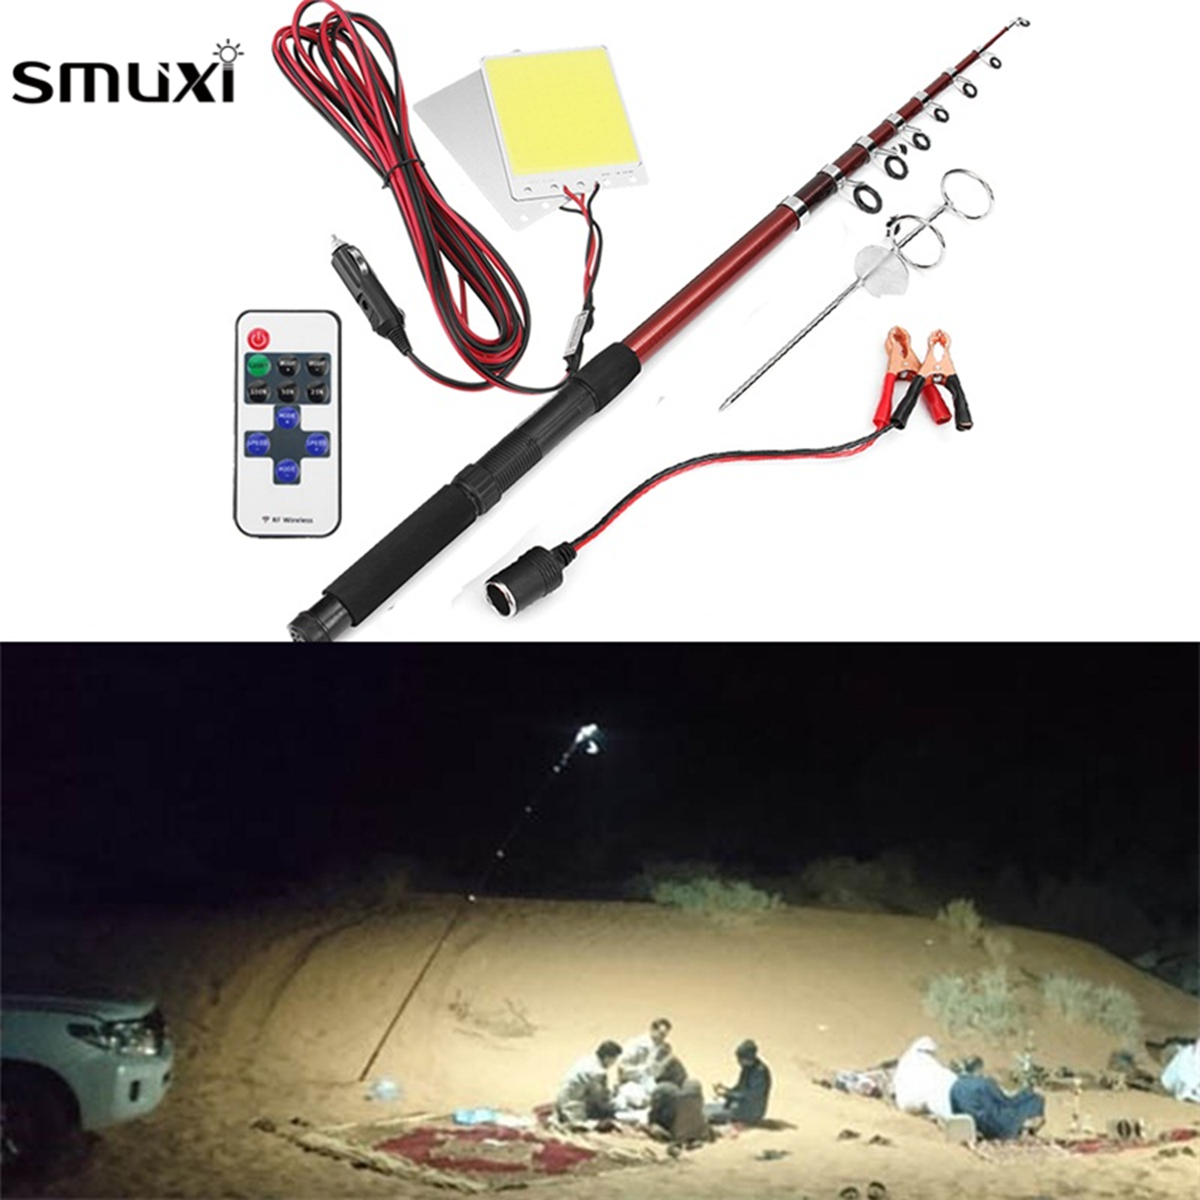 Smuxi 12V 2*96W 3.75 Meters LED Car Rod Light Remote Control Camping Telescopic Outdoor Fishing Lamp Light